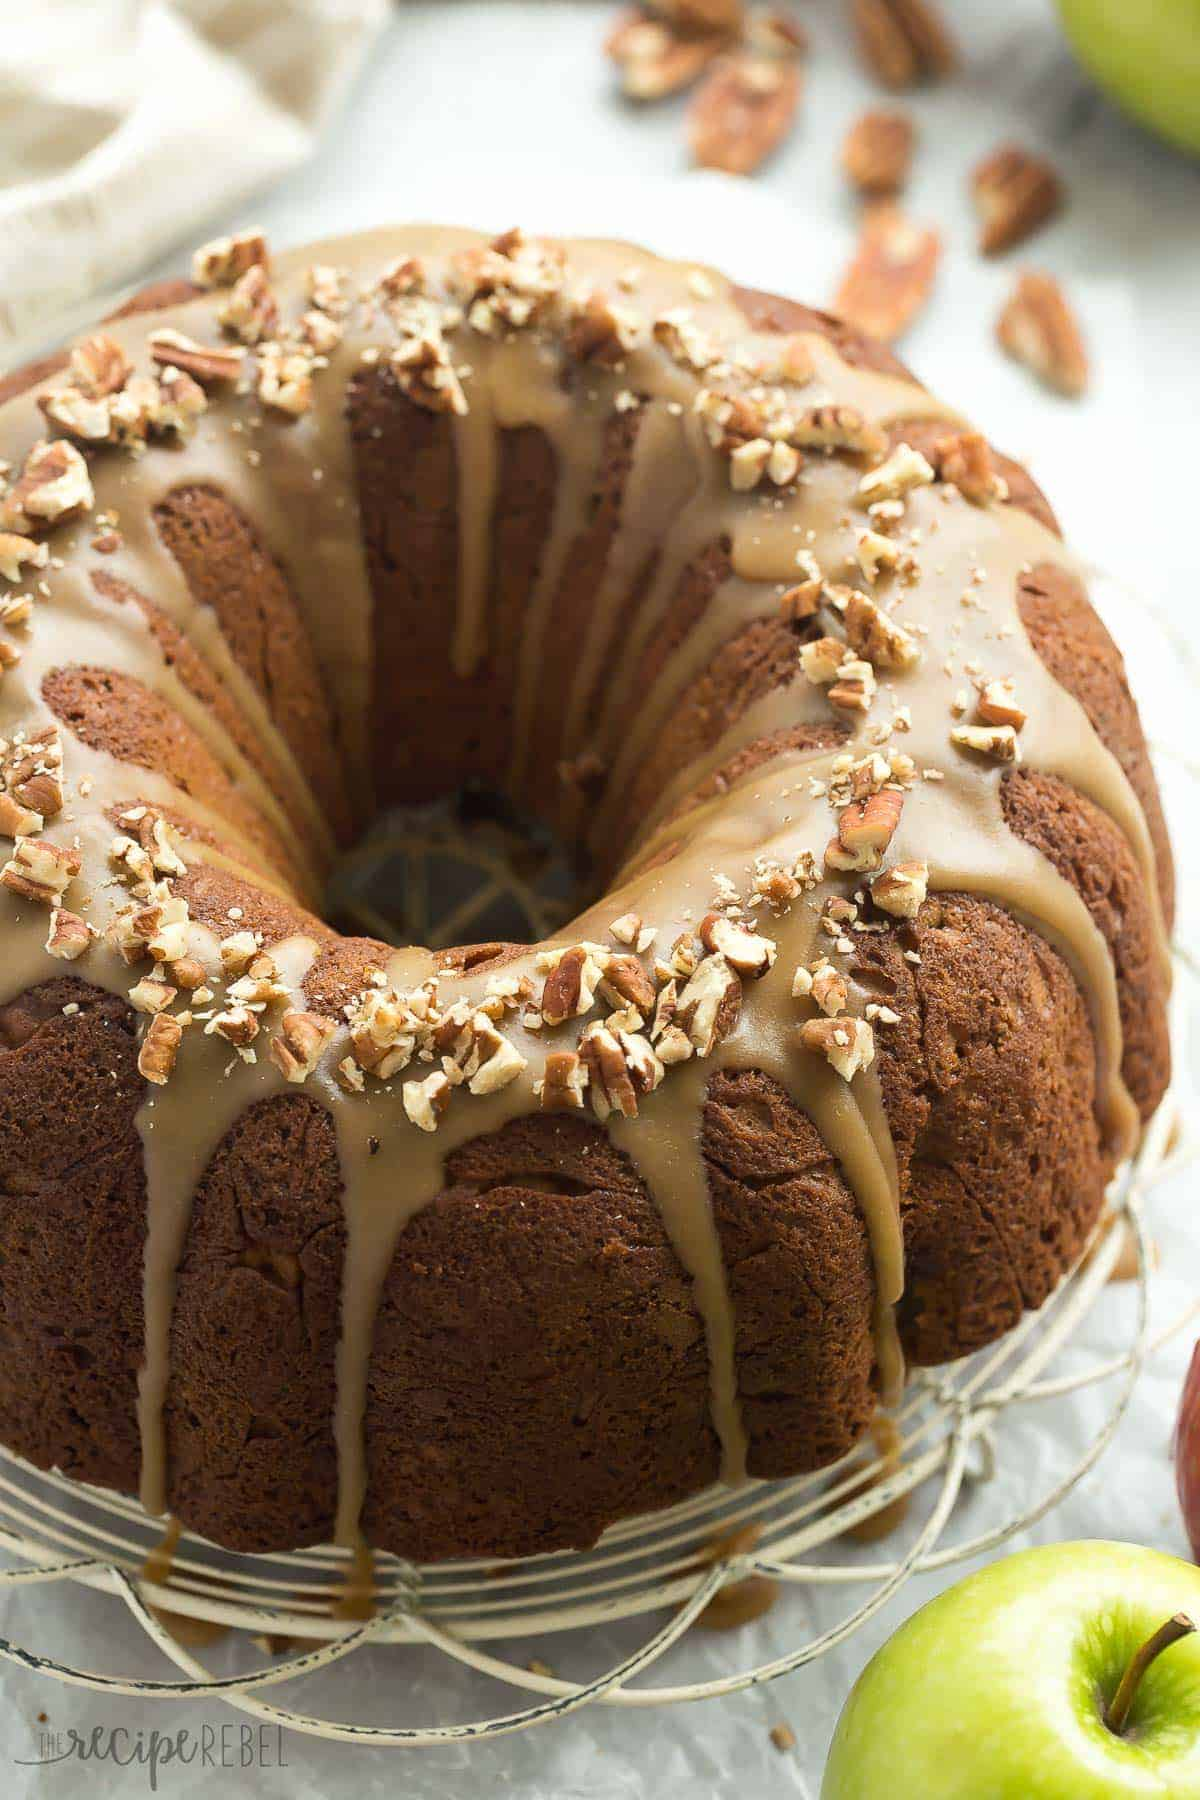 whole praline apple bundt cake on white cooling rack with praline glaze and pecans